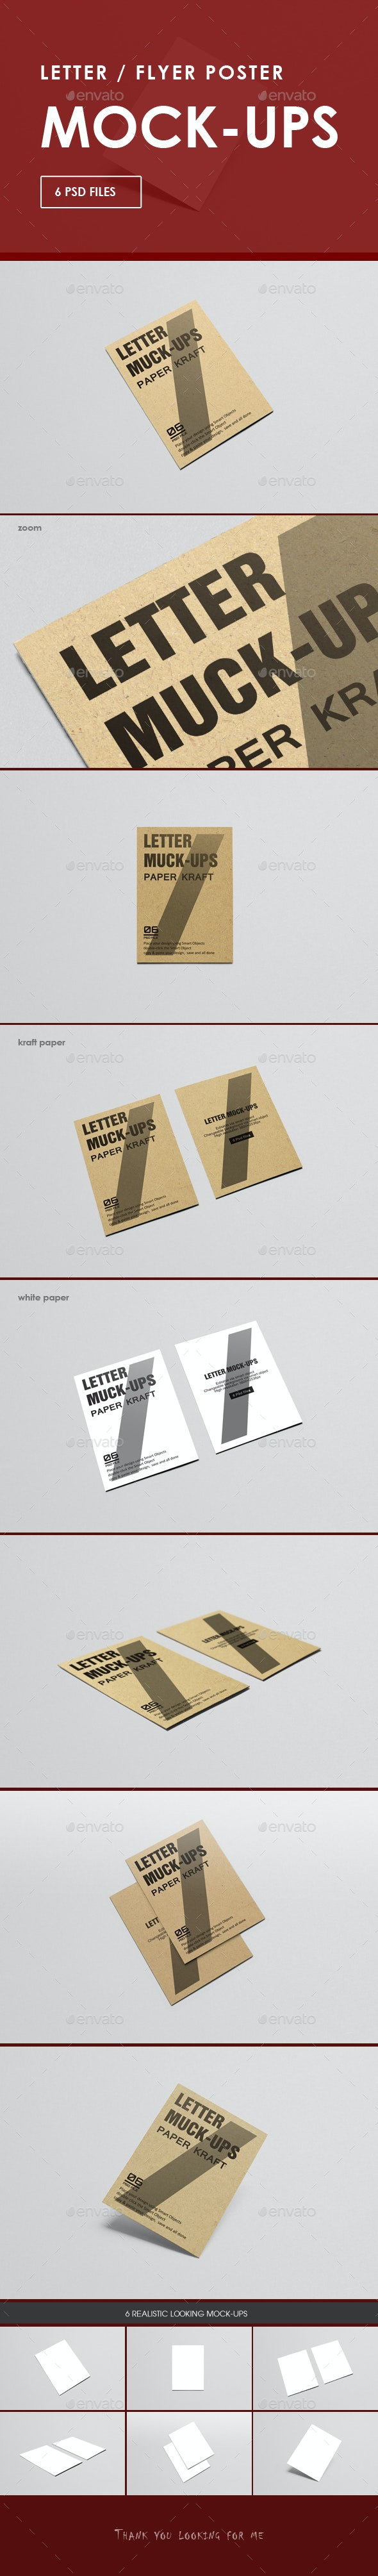 A4 Letter - A4 Flyer Poster Mock-Up - Posters Print